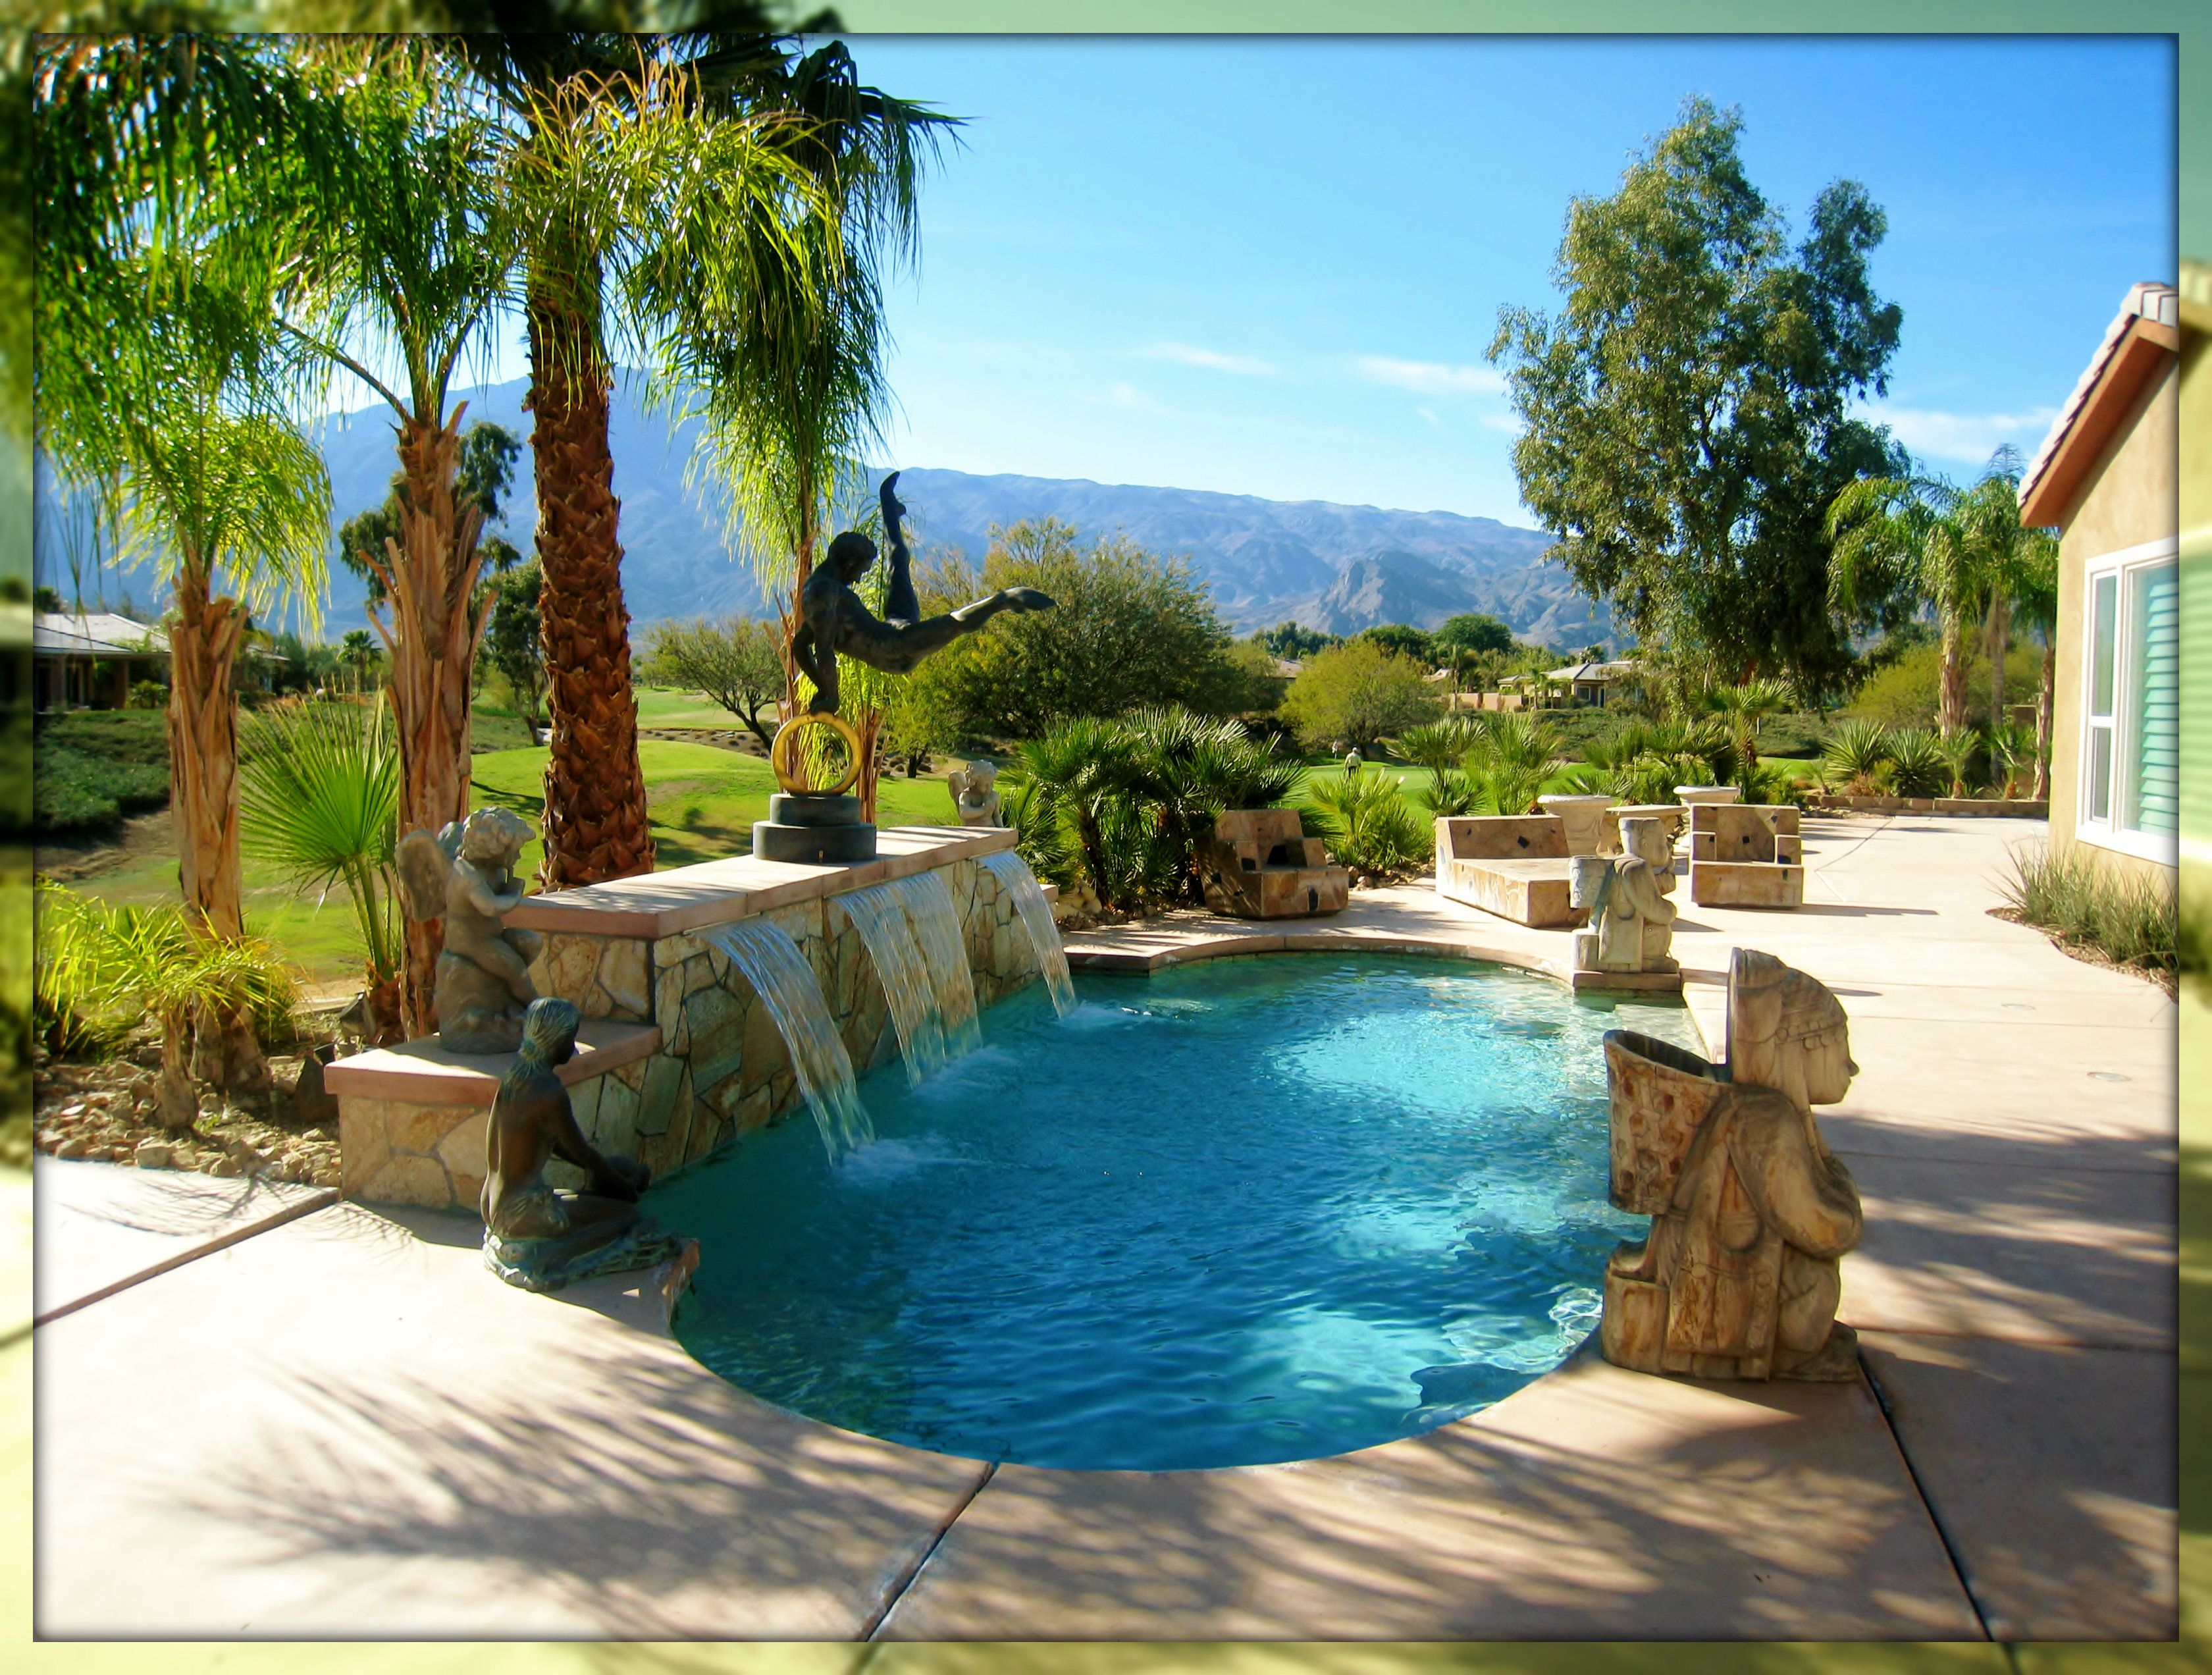 3 Bedroom Home With Casita For Sale In Trilogy La Quinta Ca Backyard Pool Home Backyard